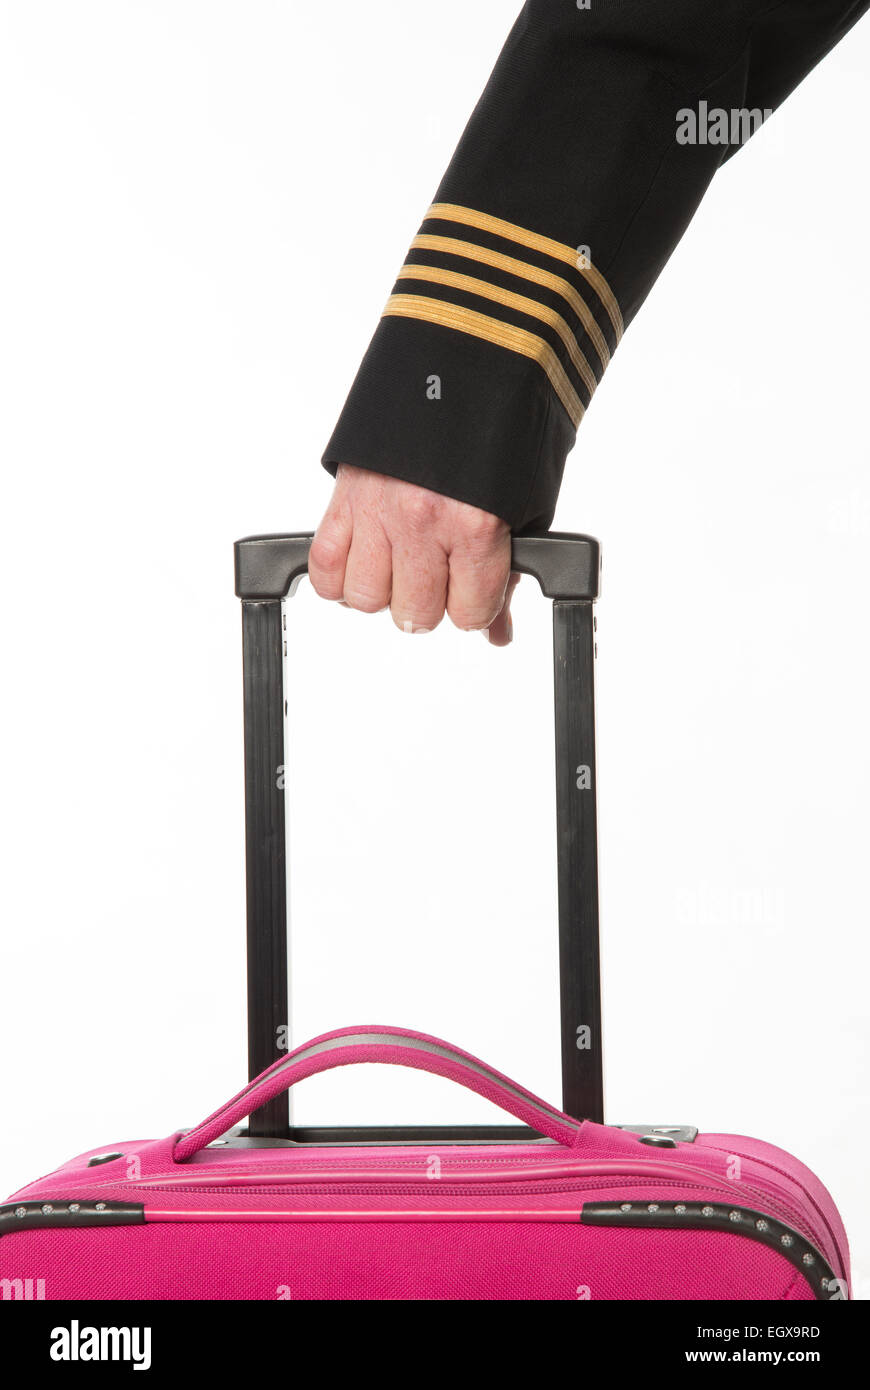 Four gold rings on airline officers uniform wearing gloves and with a carry on bag - Stock Image